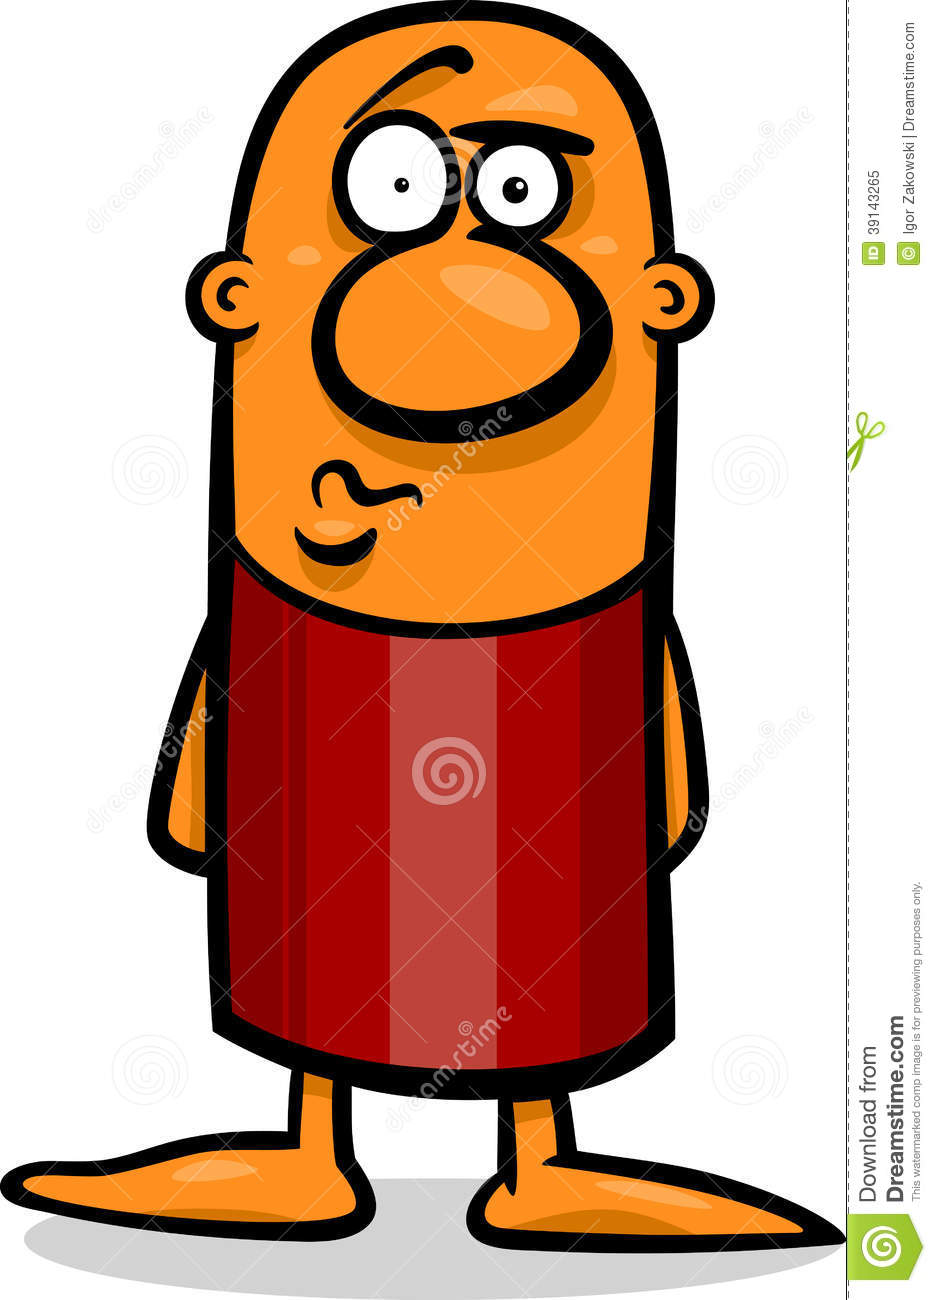 Confused Guy Cartoon Illustration Stock Vector - Image ...